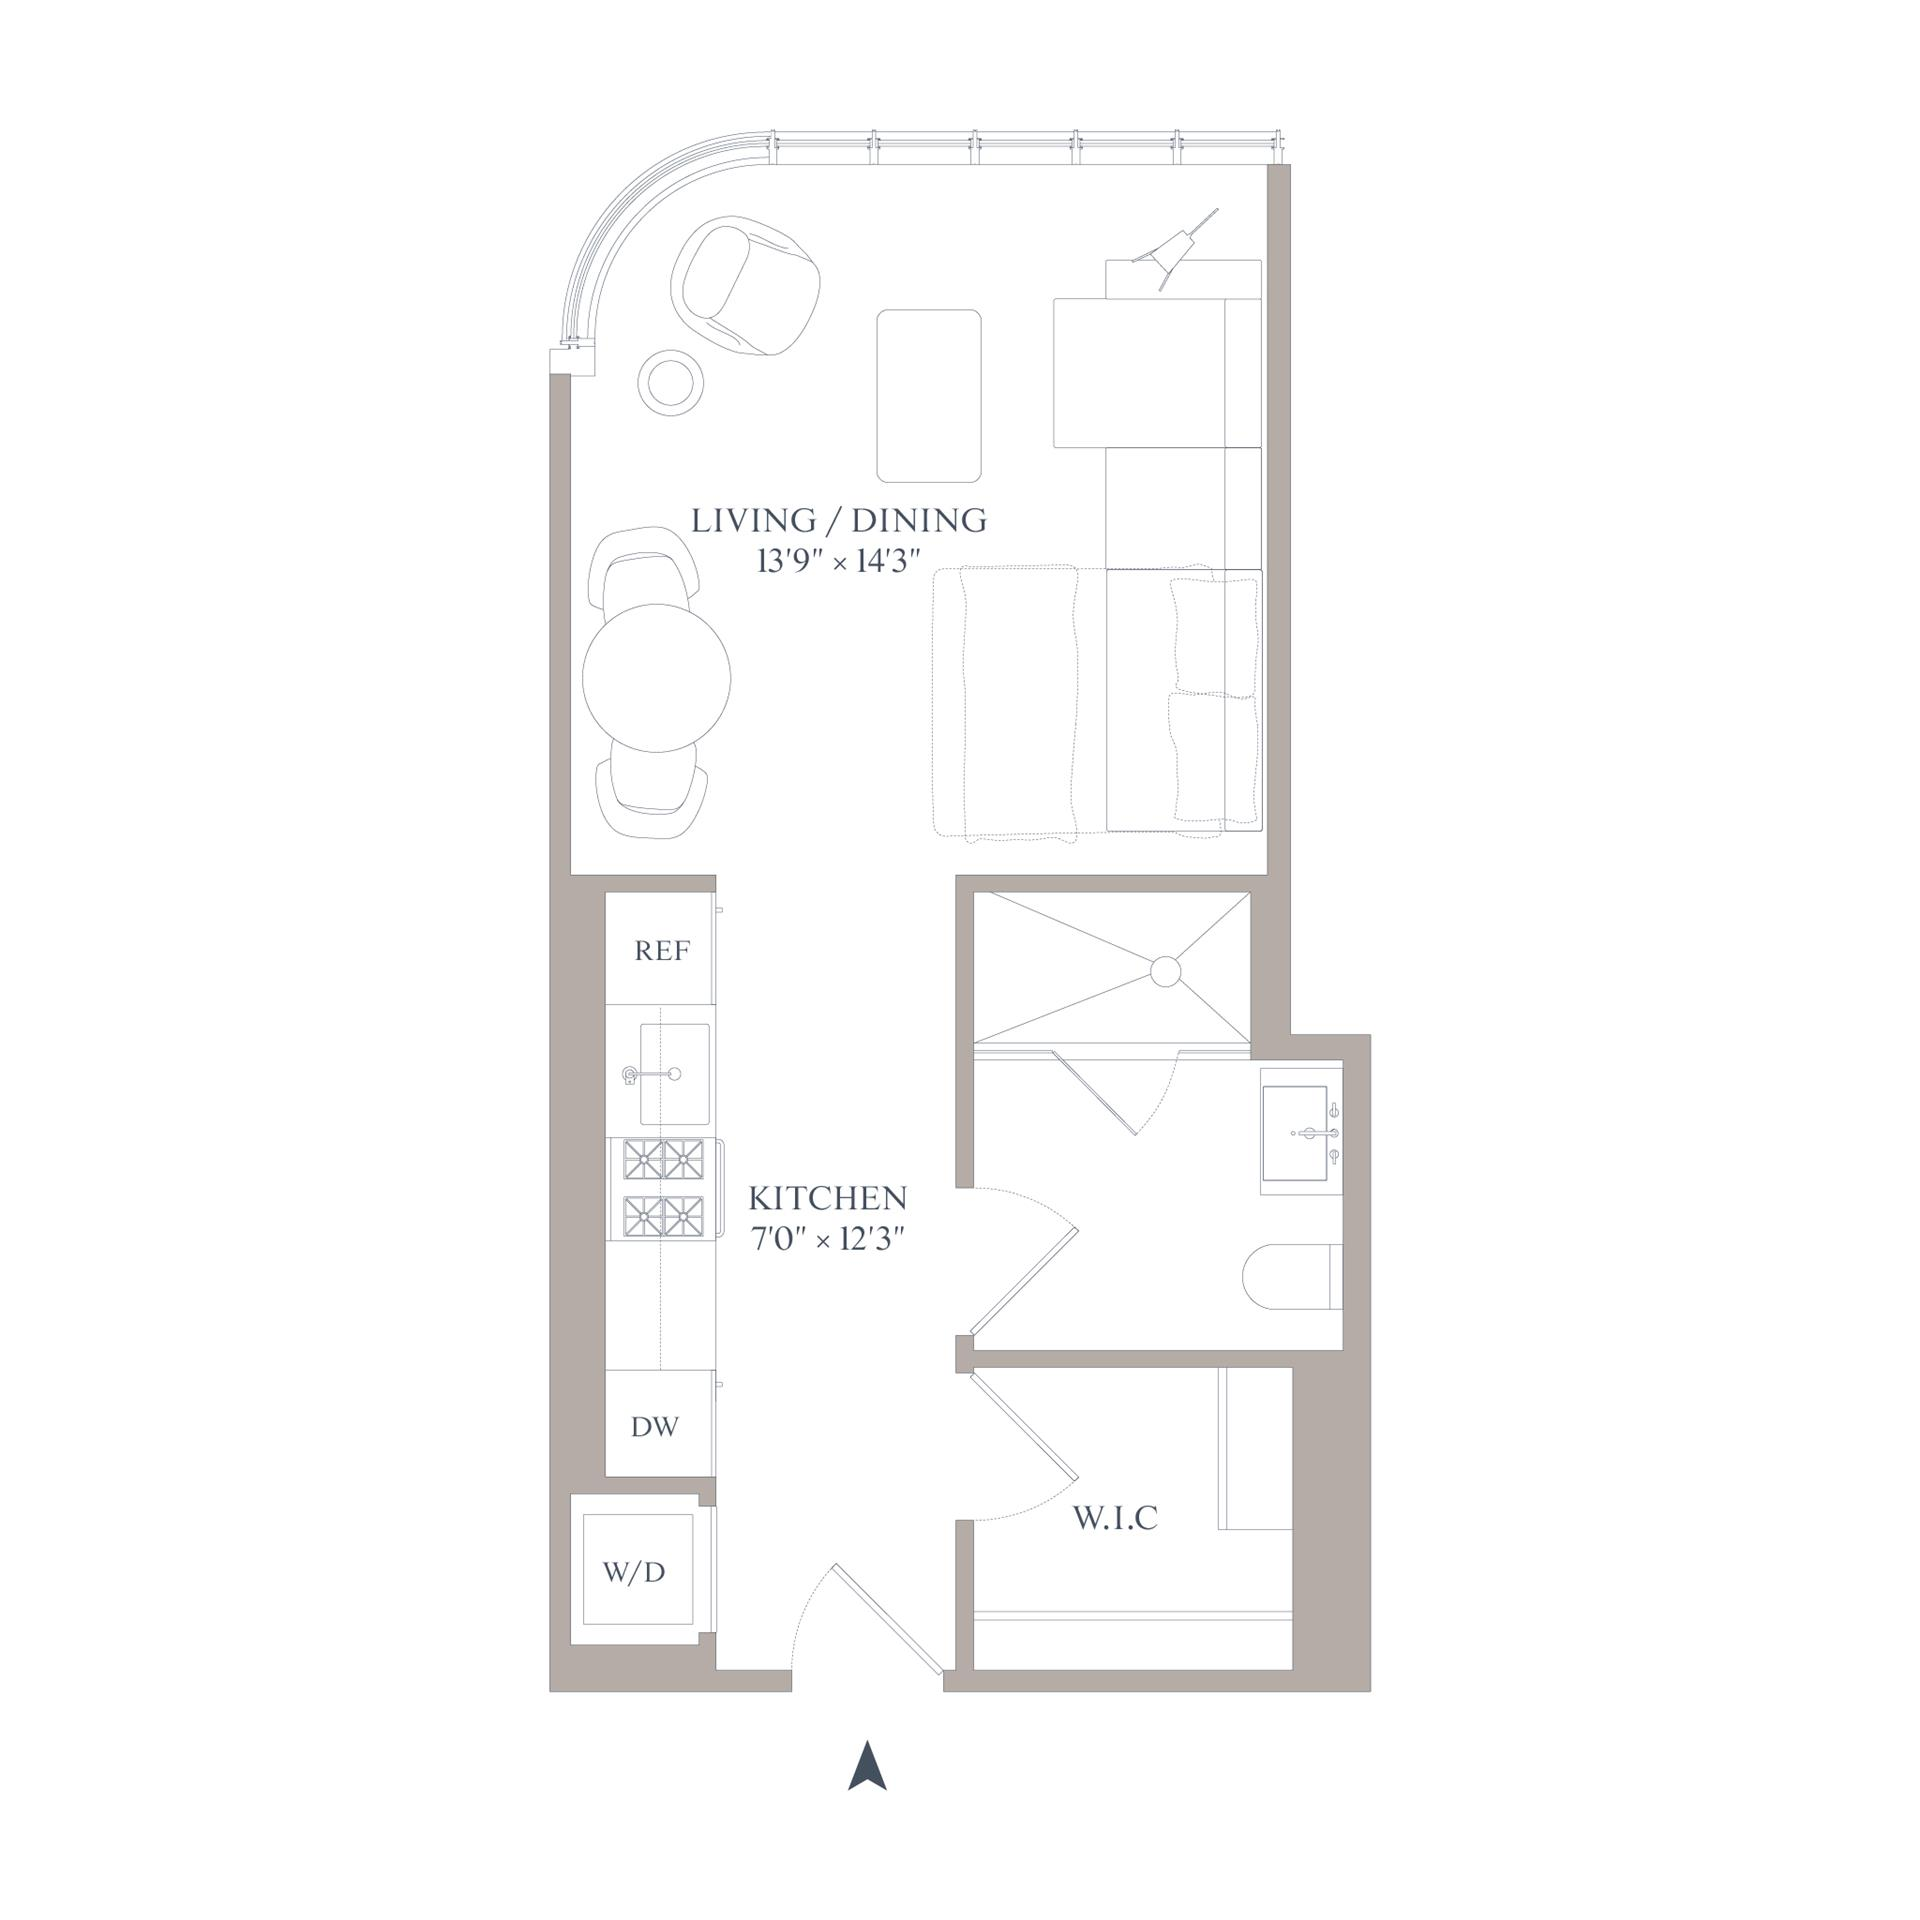 Floor plan of 565 Broome St, N6G - SoHo - Nolita, New York